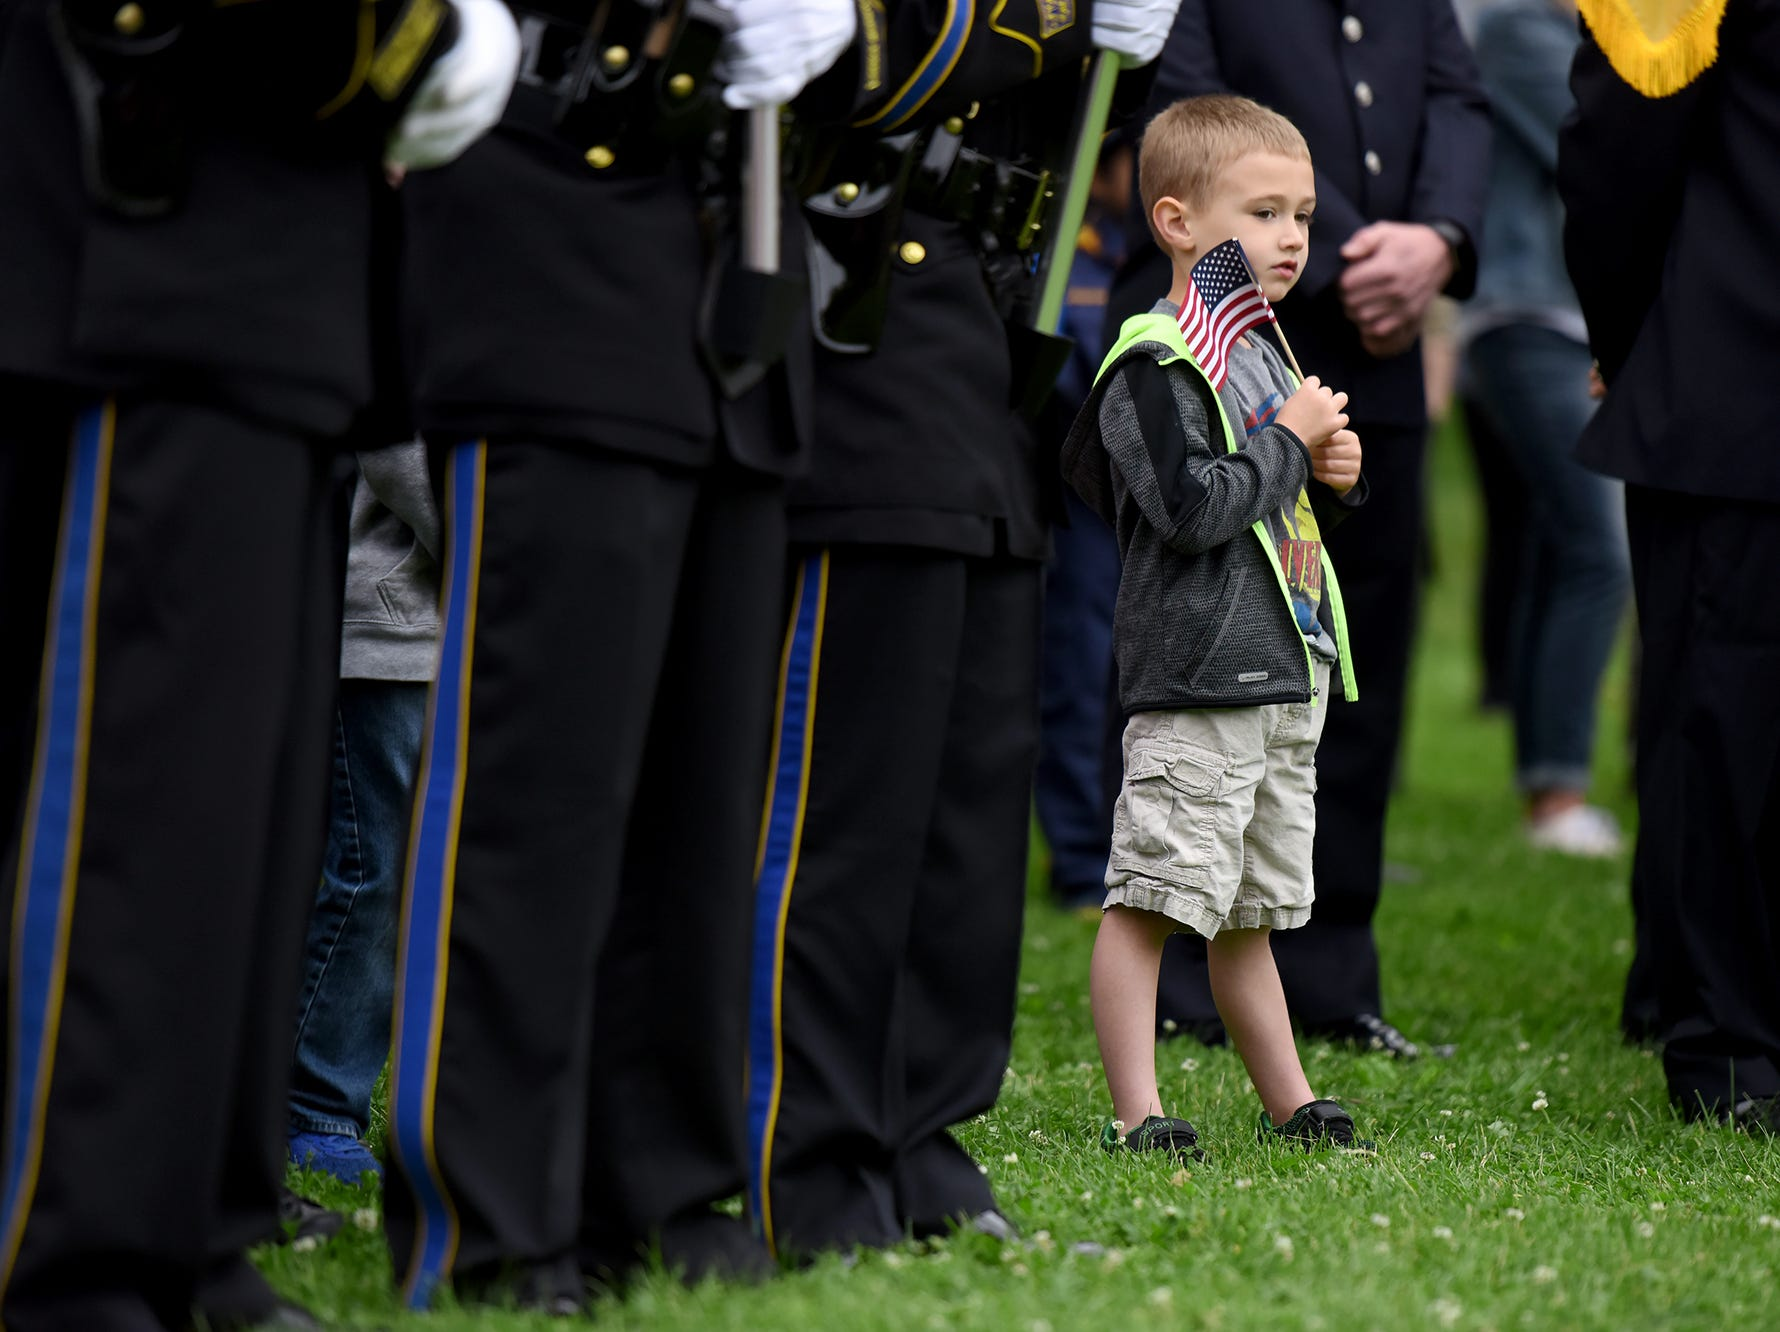 The Clifton Memorial Day parade was held on Monday, May 28, 2018. Trevor Nicol 4, of Clifton, lines up among the Clifton department during a ceremony at Chelsea Memorial Park. Nicol's uncle is a Clifton police officer.